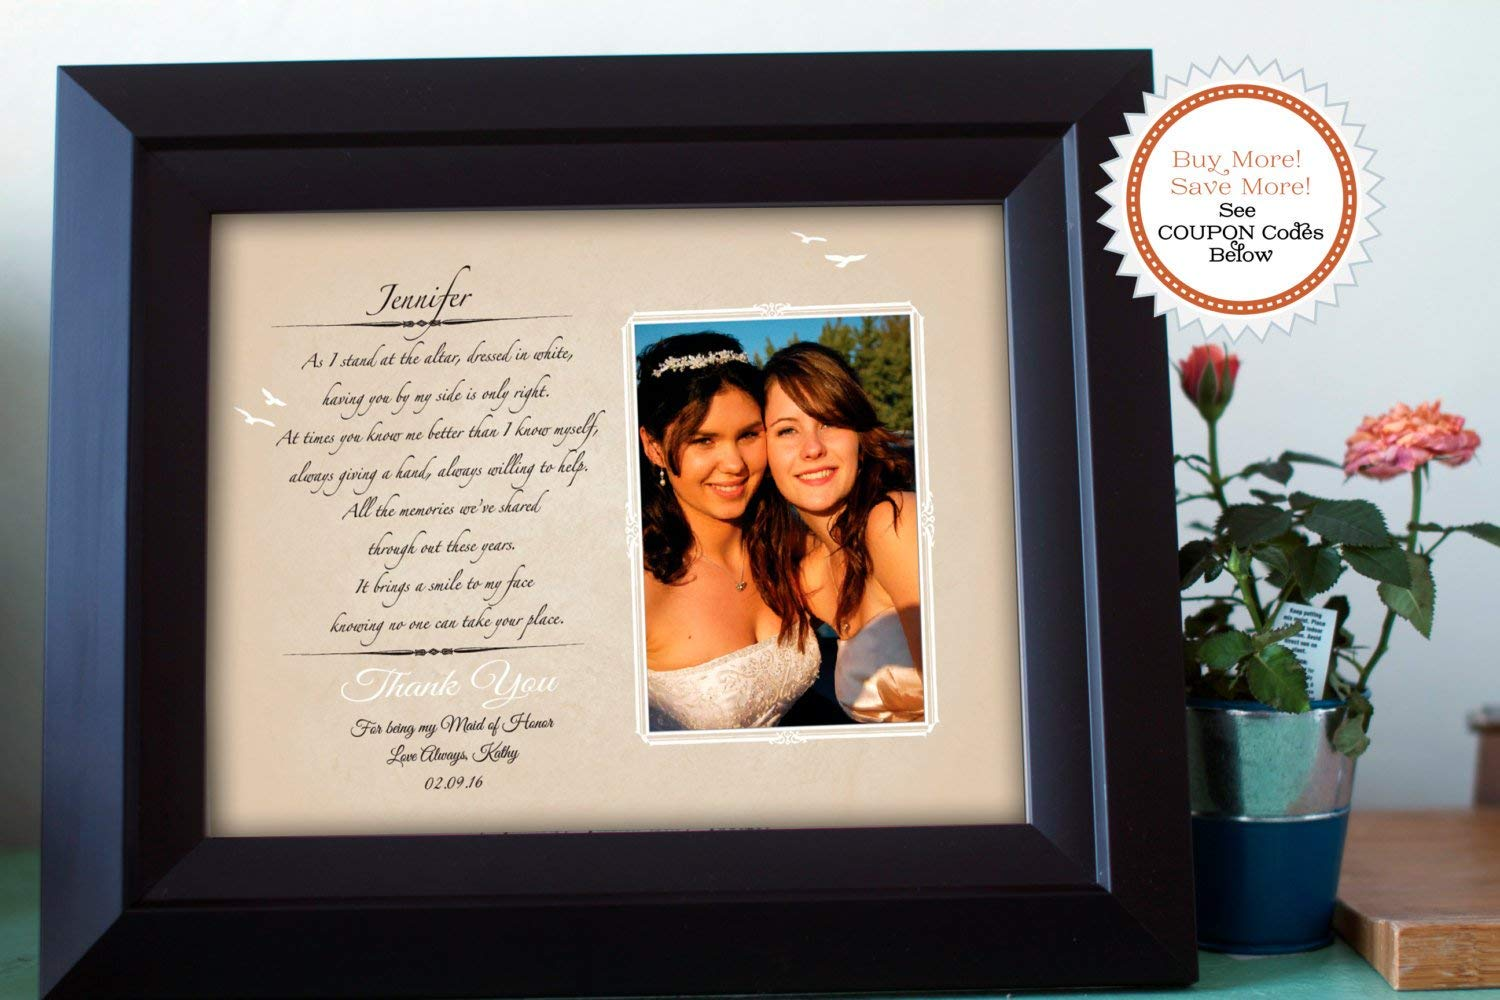 Cheap Wedding Gift From Maid Of Honor Find Wedding Gift From Maid